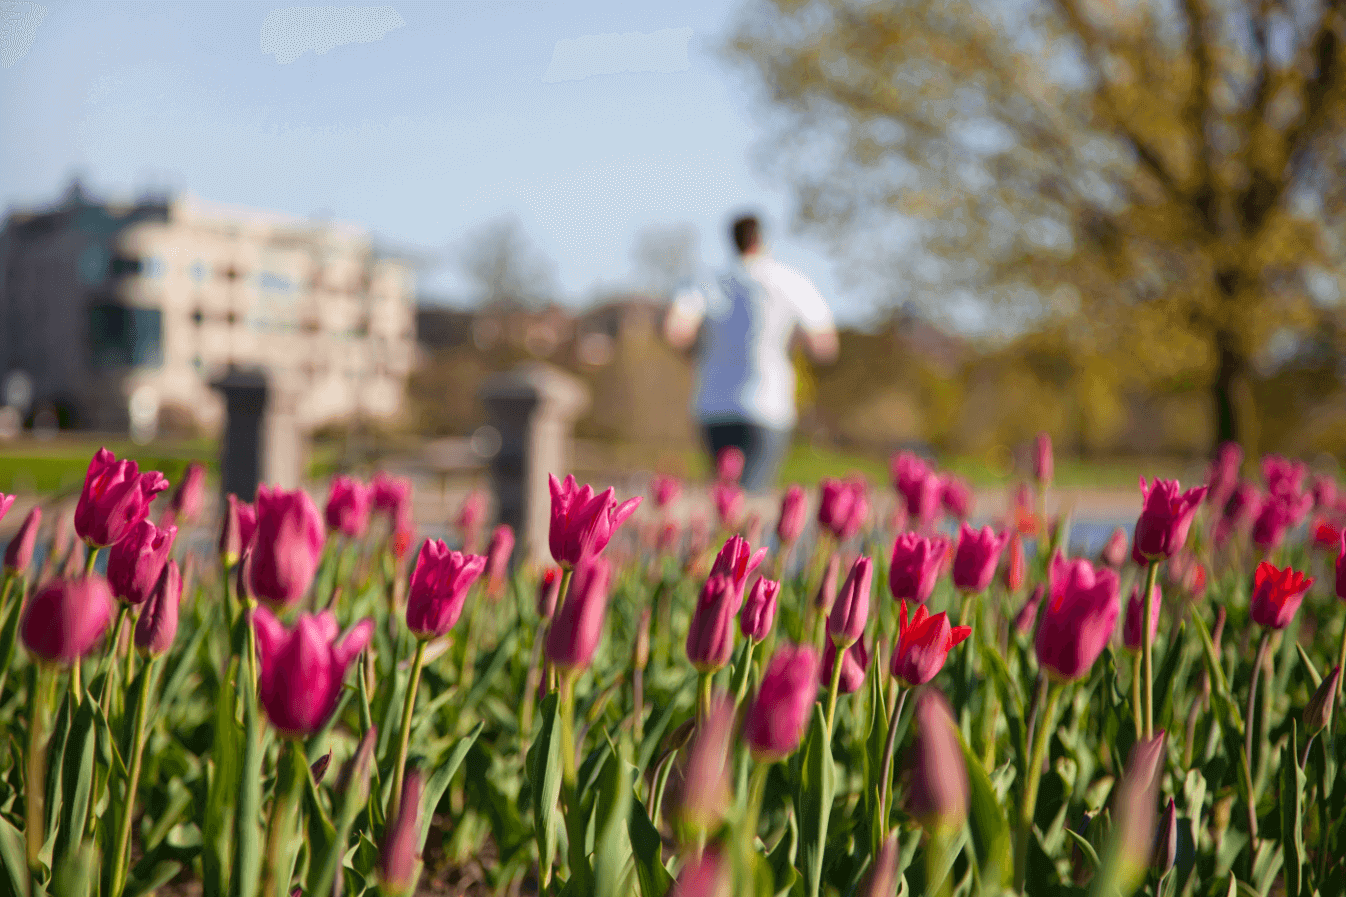 Pink tulips with a person running, trees and buildings in the background